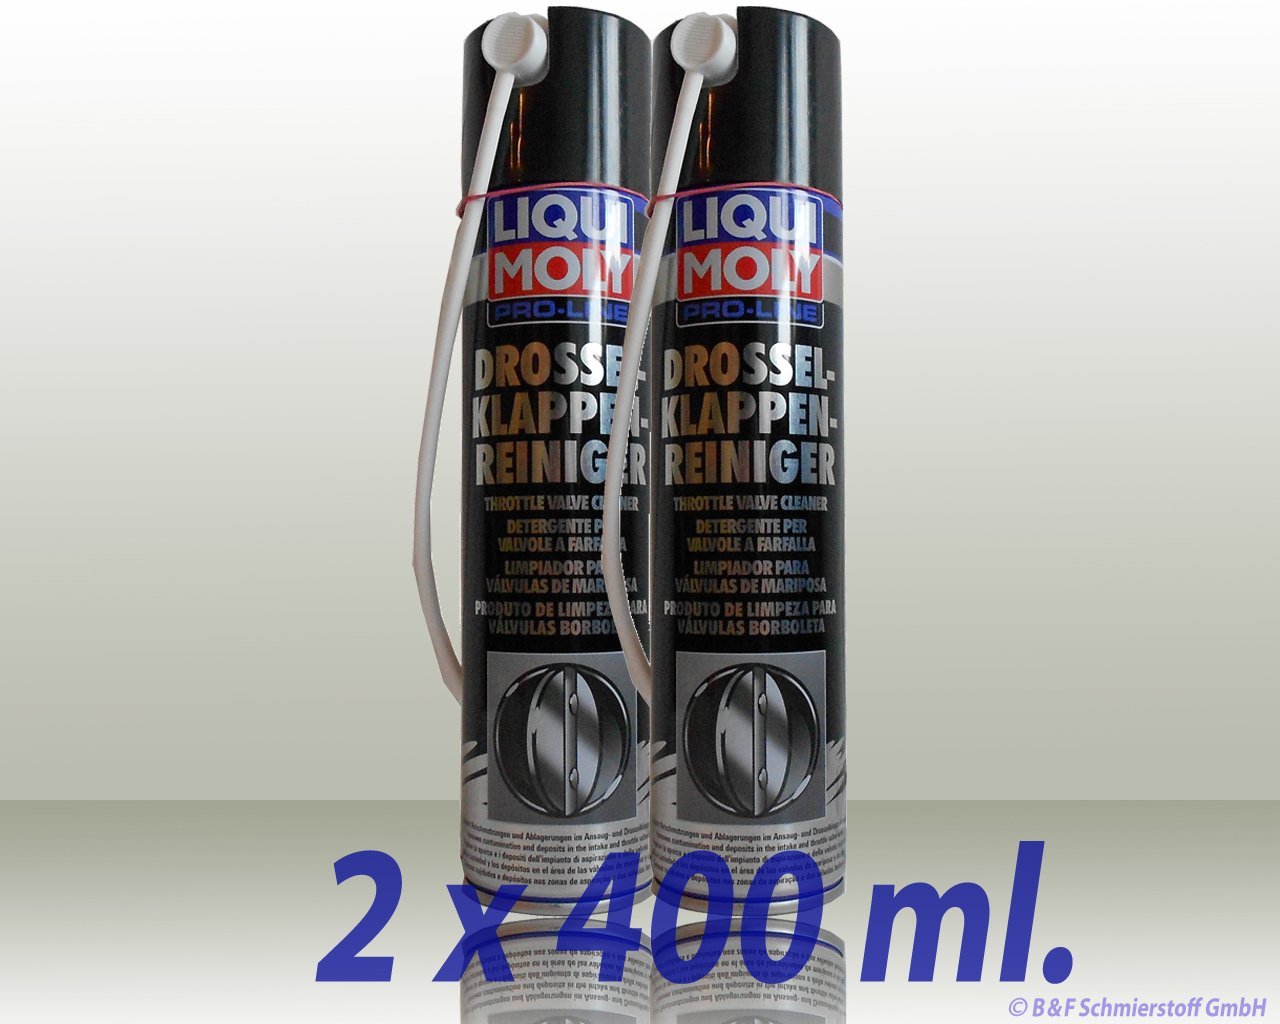 Liqui Moly 5111 Detergent for Butterfly valves, 400 ml Liqui Moly GmbH 95404644